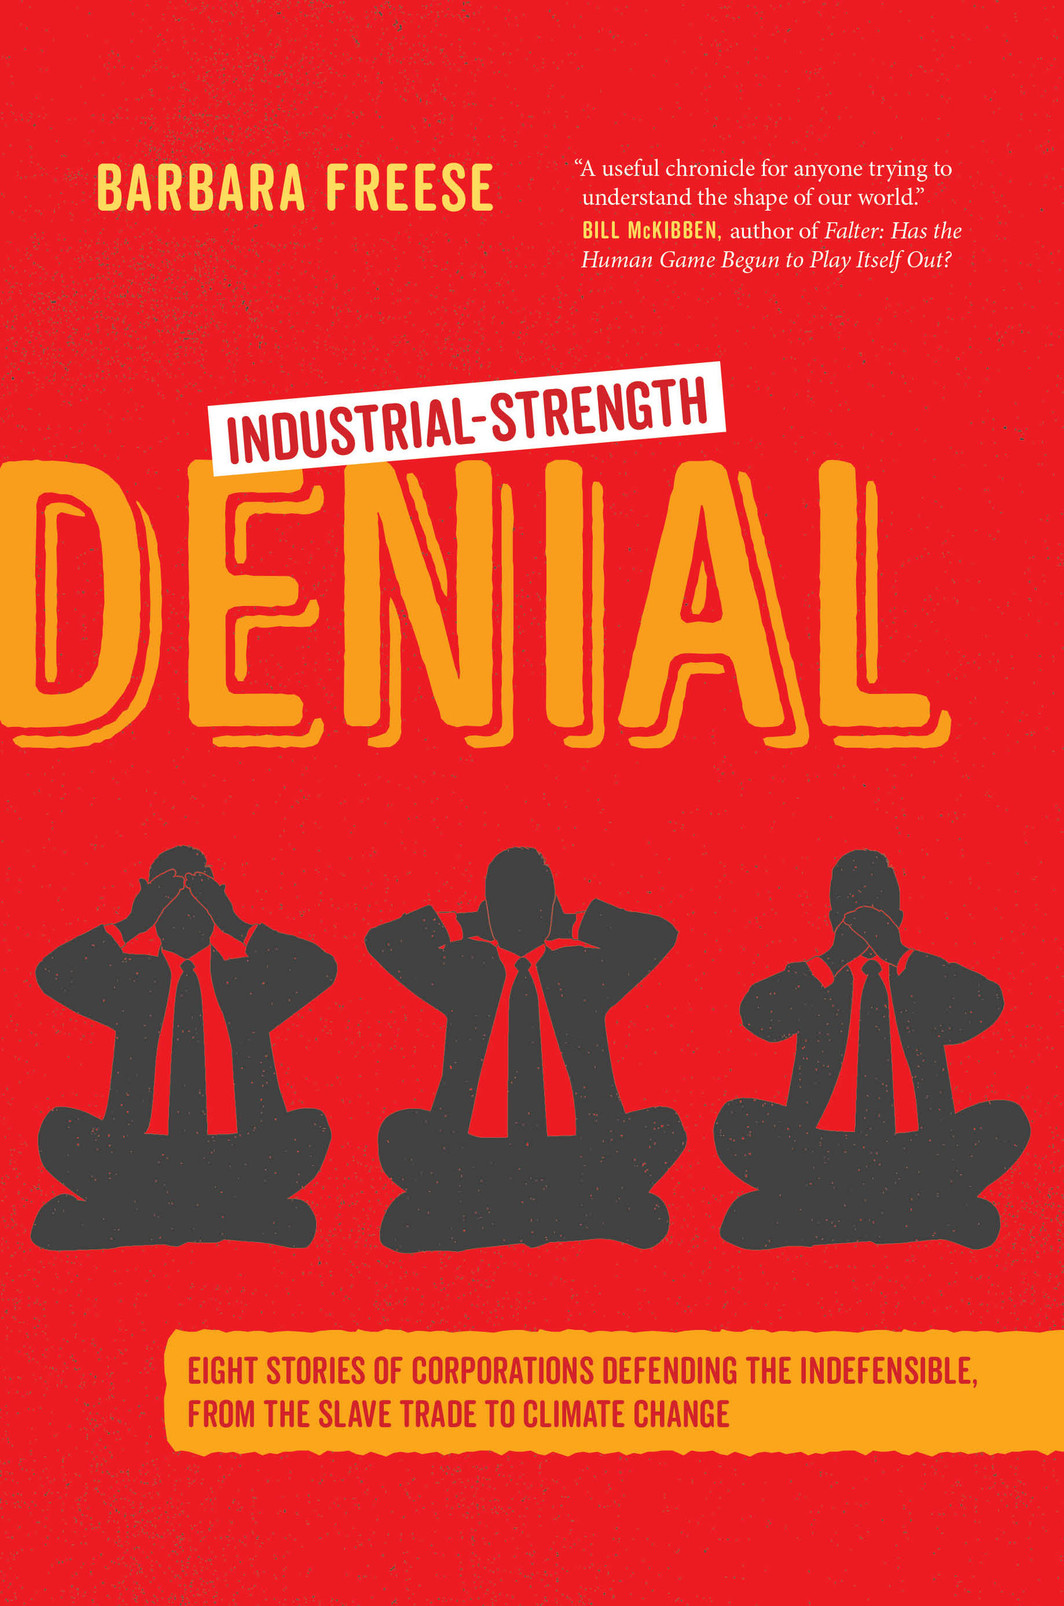 The cover of Industrial-Strength Denial: Eight Stories of Corporations Defending the Indefensible, from the Slave Trade to Climate Change